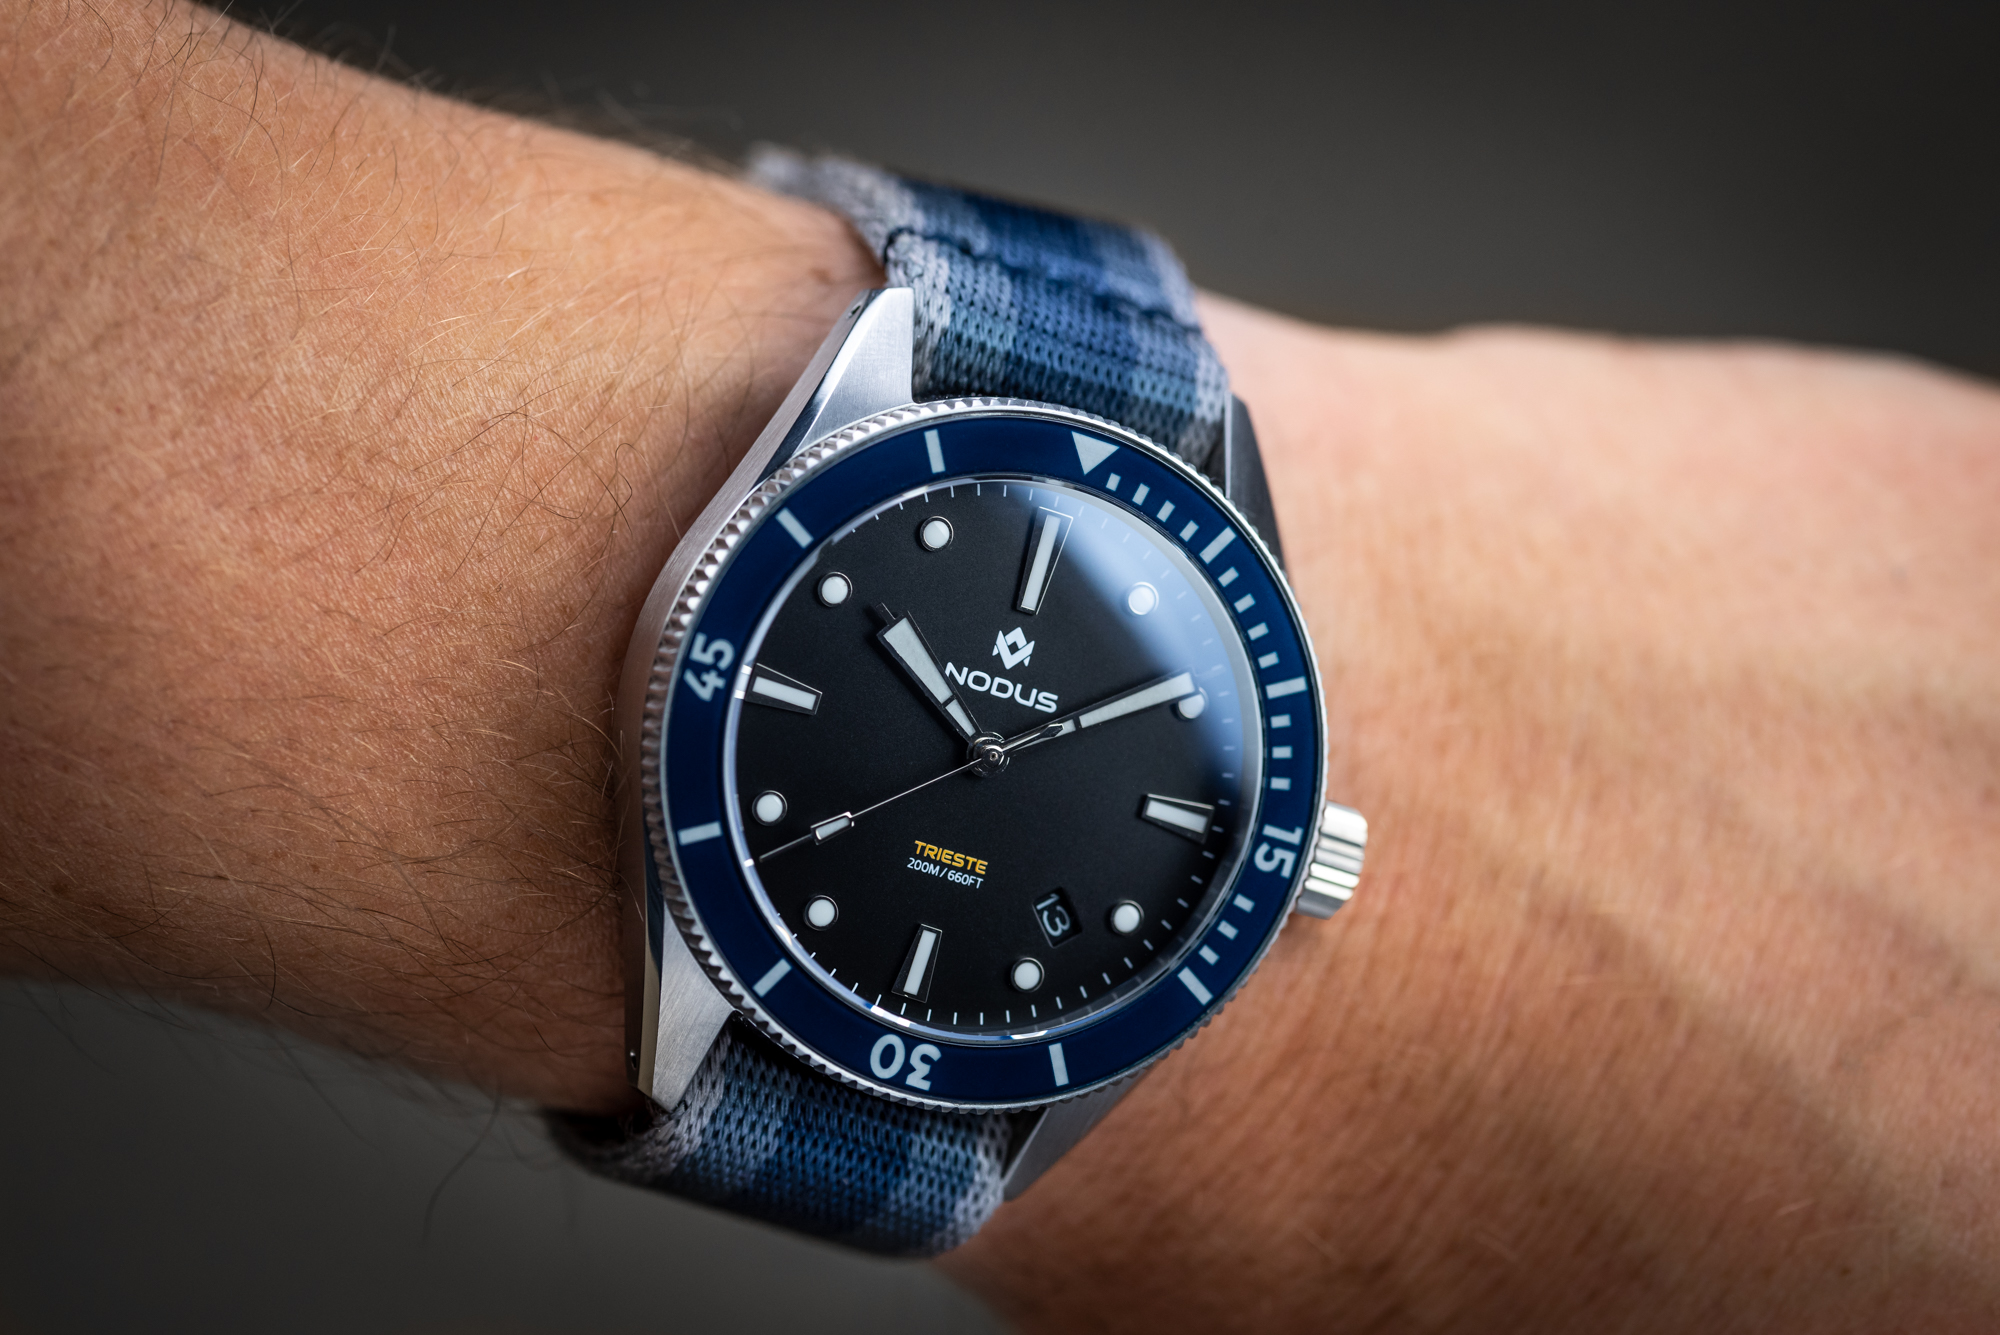 A wrist shot of the Nodus Trieste dive watch in a black dial and blue bezel. The dimensions of this watch allow it to fit almost any wrist perfectly